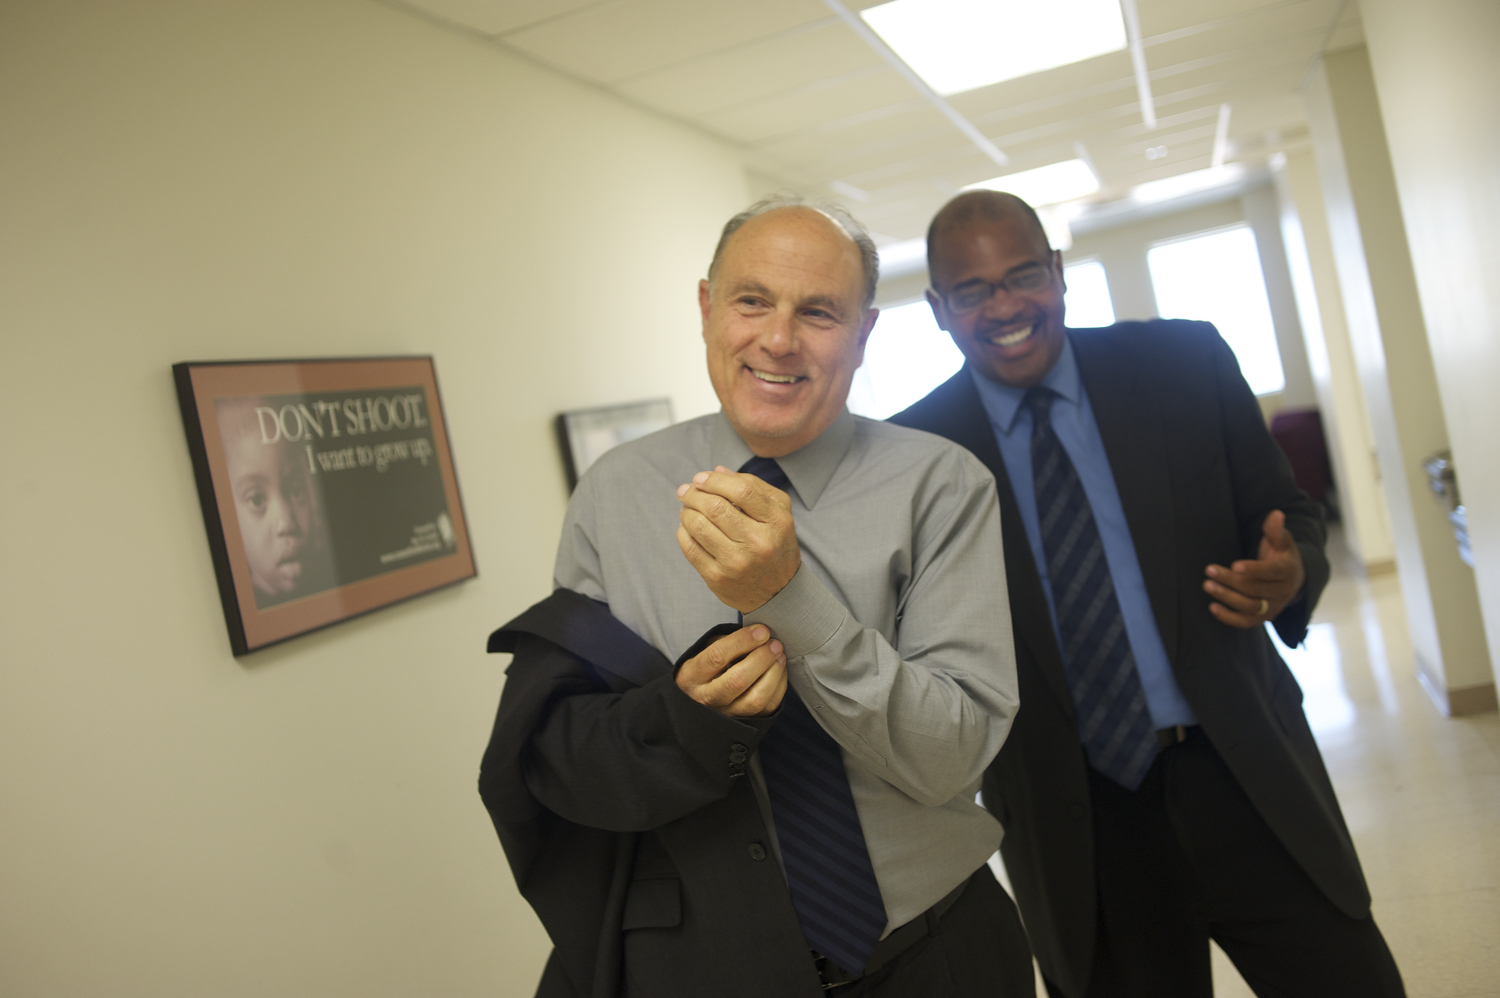 Caption: Dr. Gary Slutkin and Autry Philips, Credit: Bill Healy